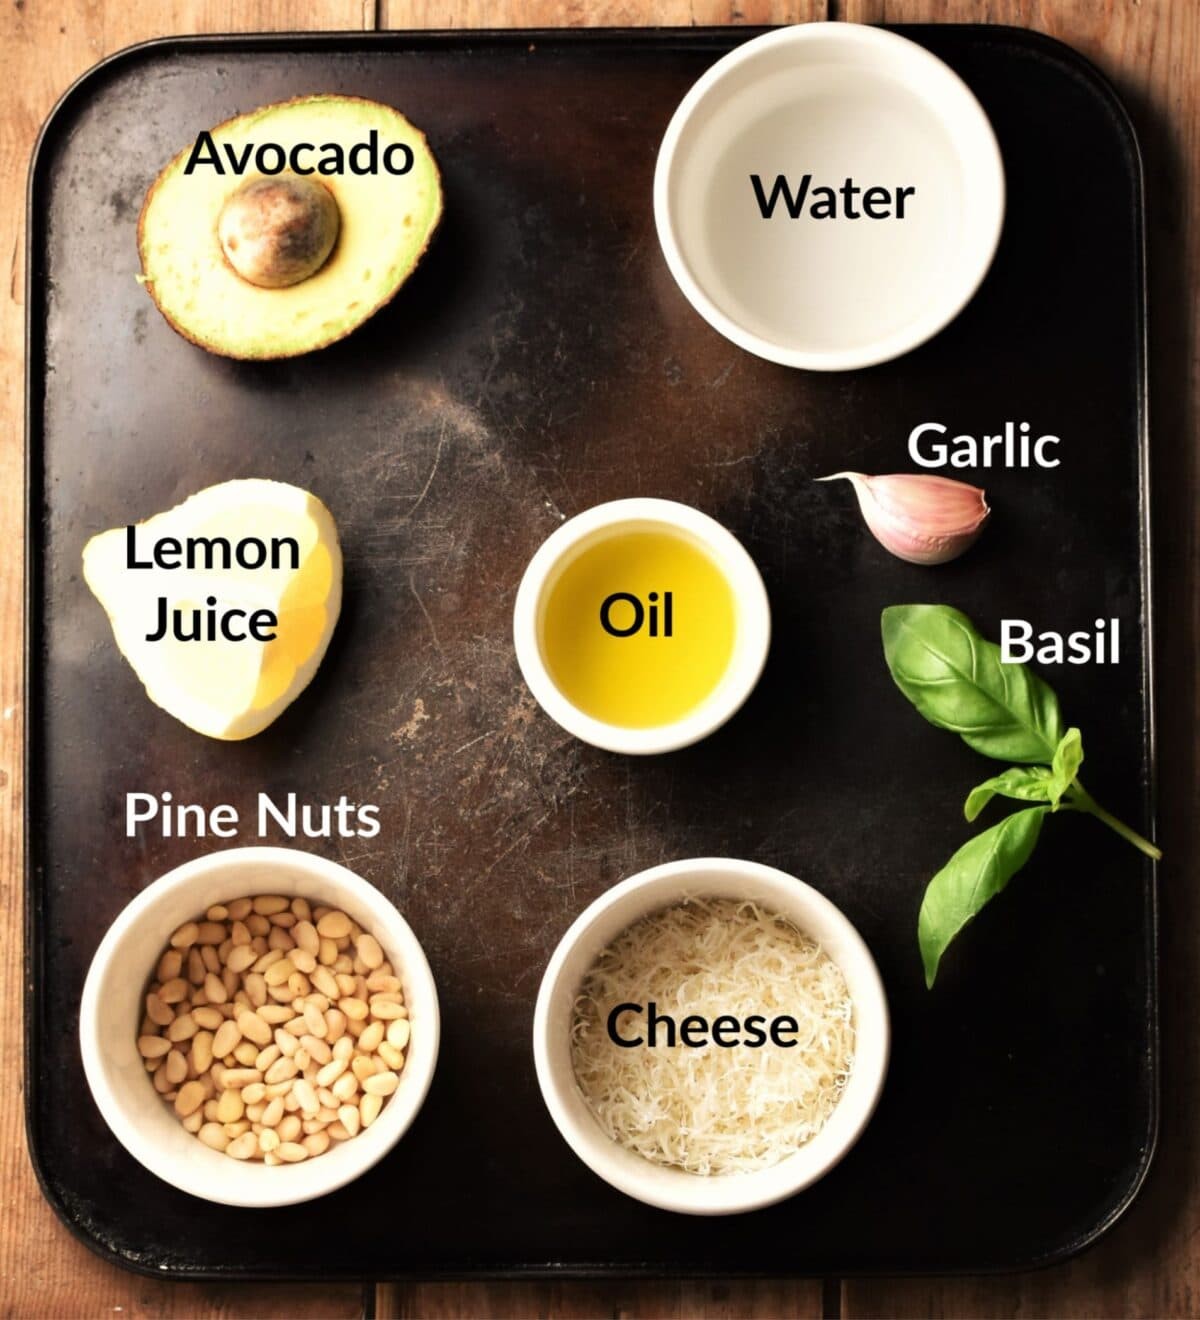 Avocado pesto sauce ingredients in individual dishes.